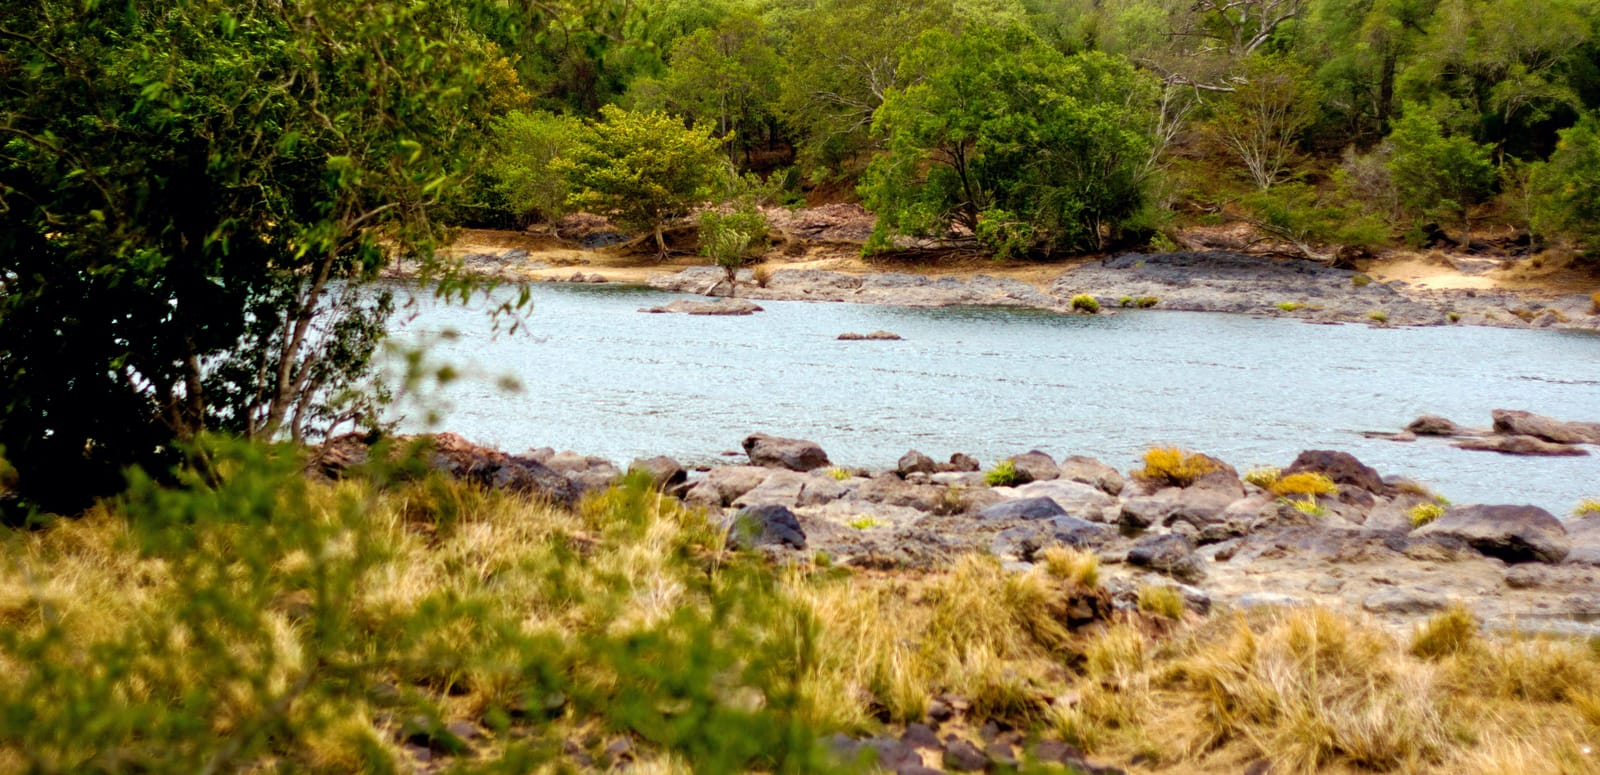 1492596914_enroute_galibore_fishing_camp_-_cauvery_river.jpg